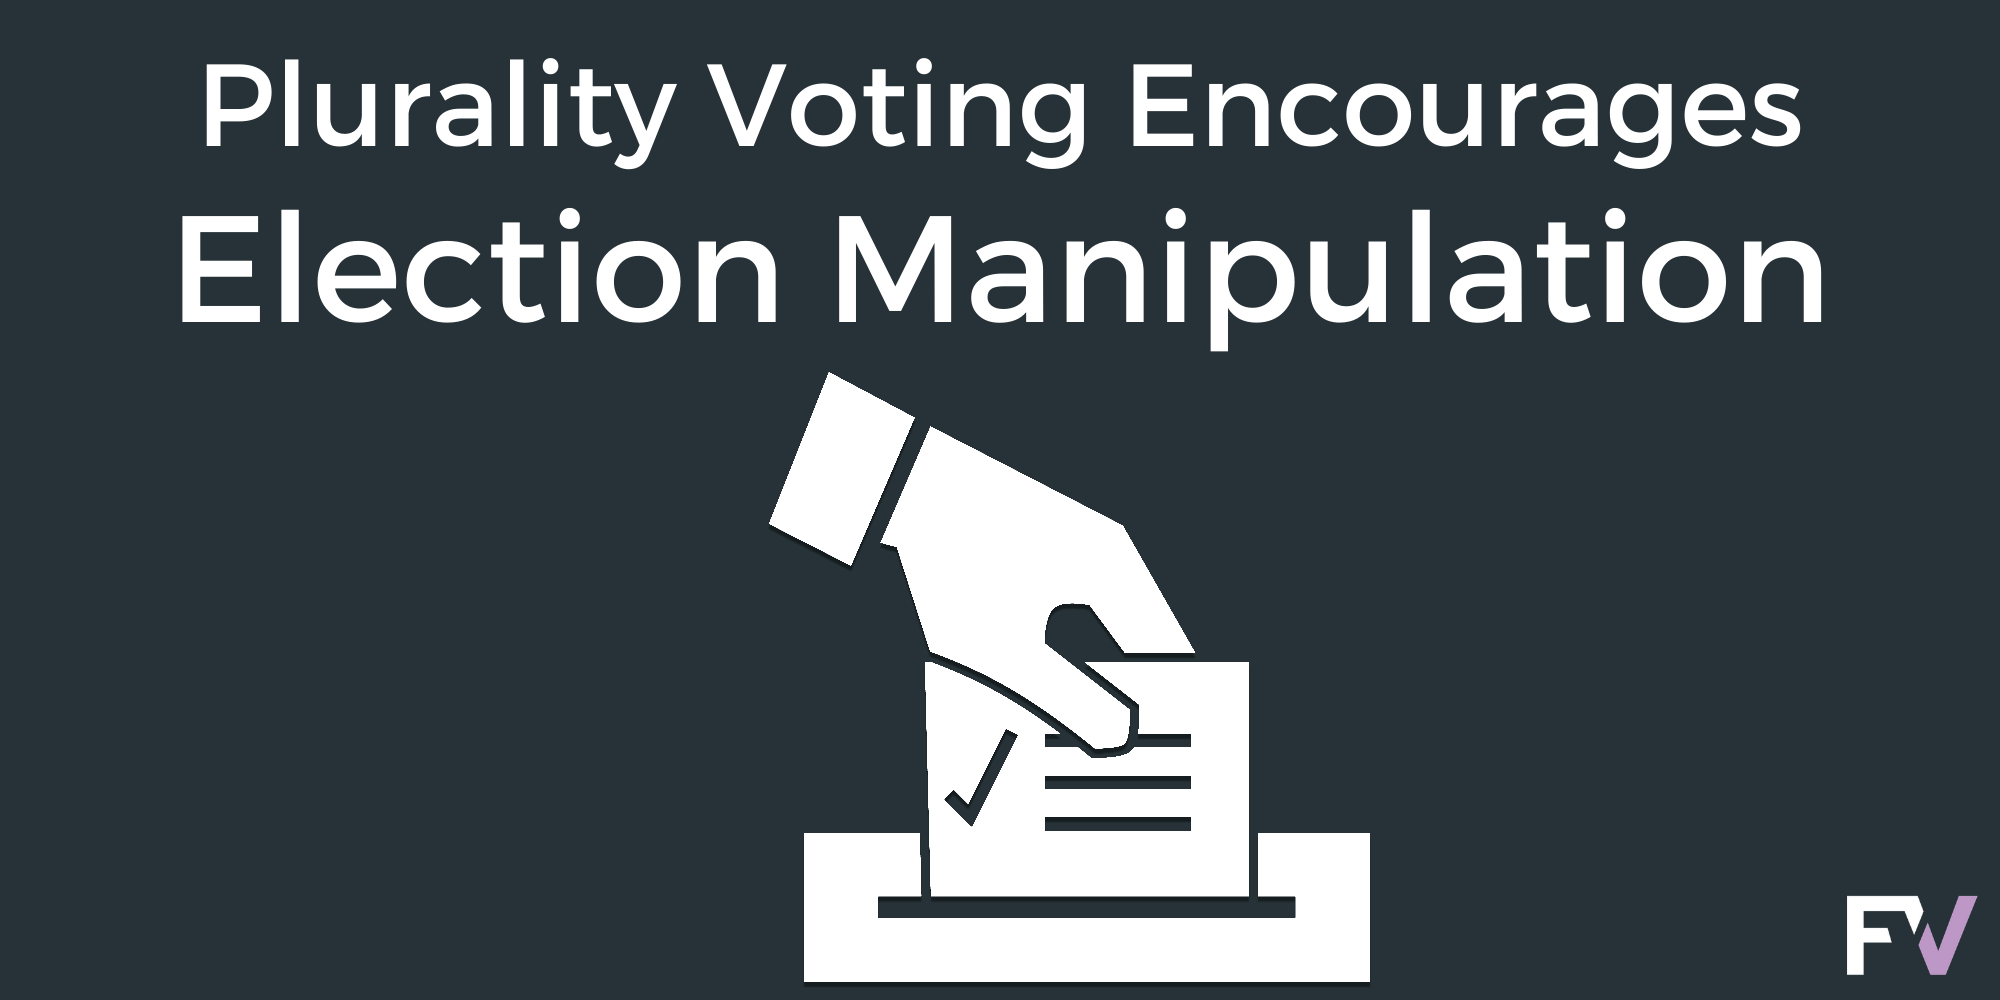 Winner-Take-All Plurality Elections Lead to Fraudulent Candidate Schemes